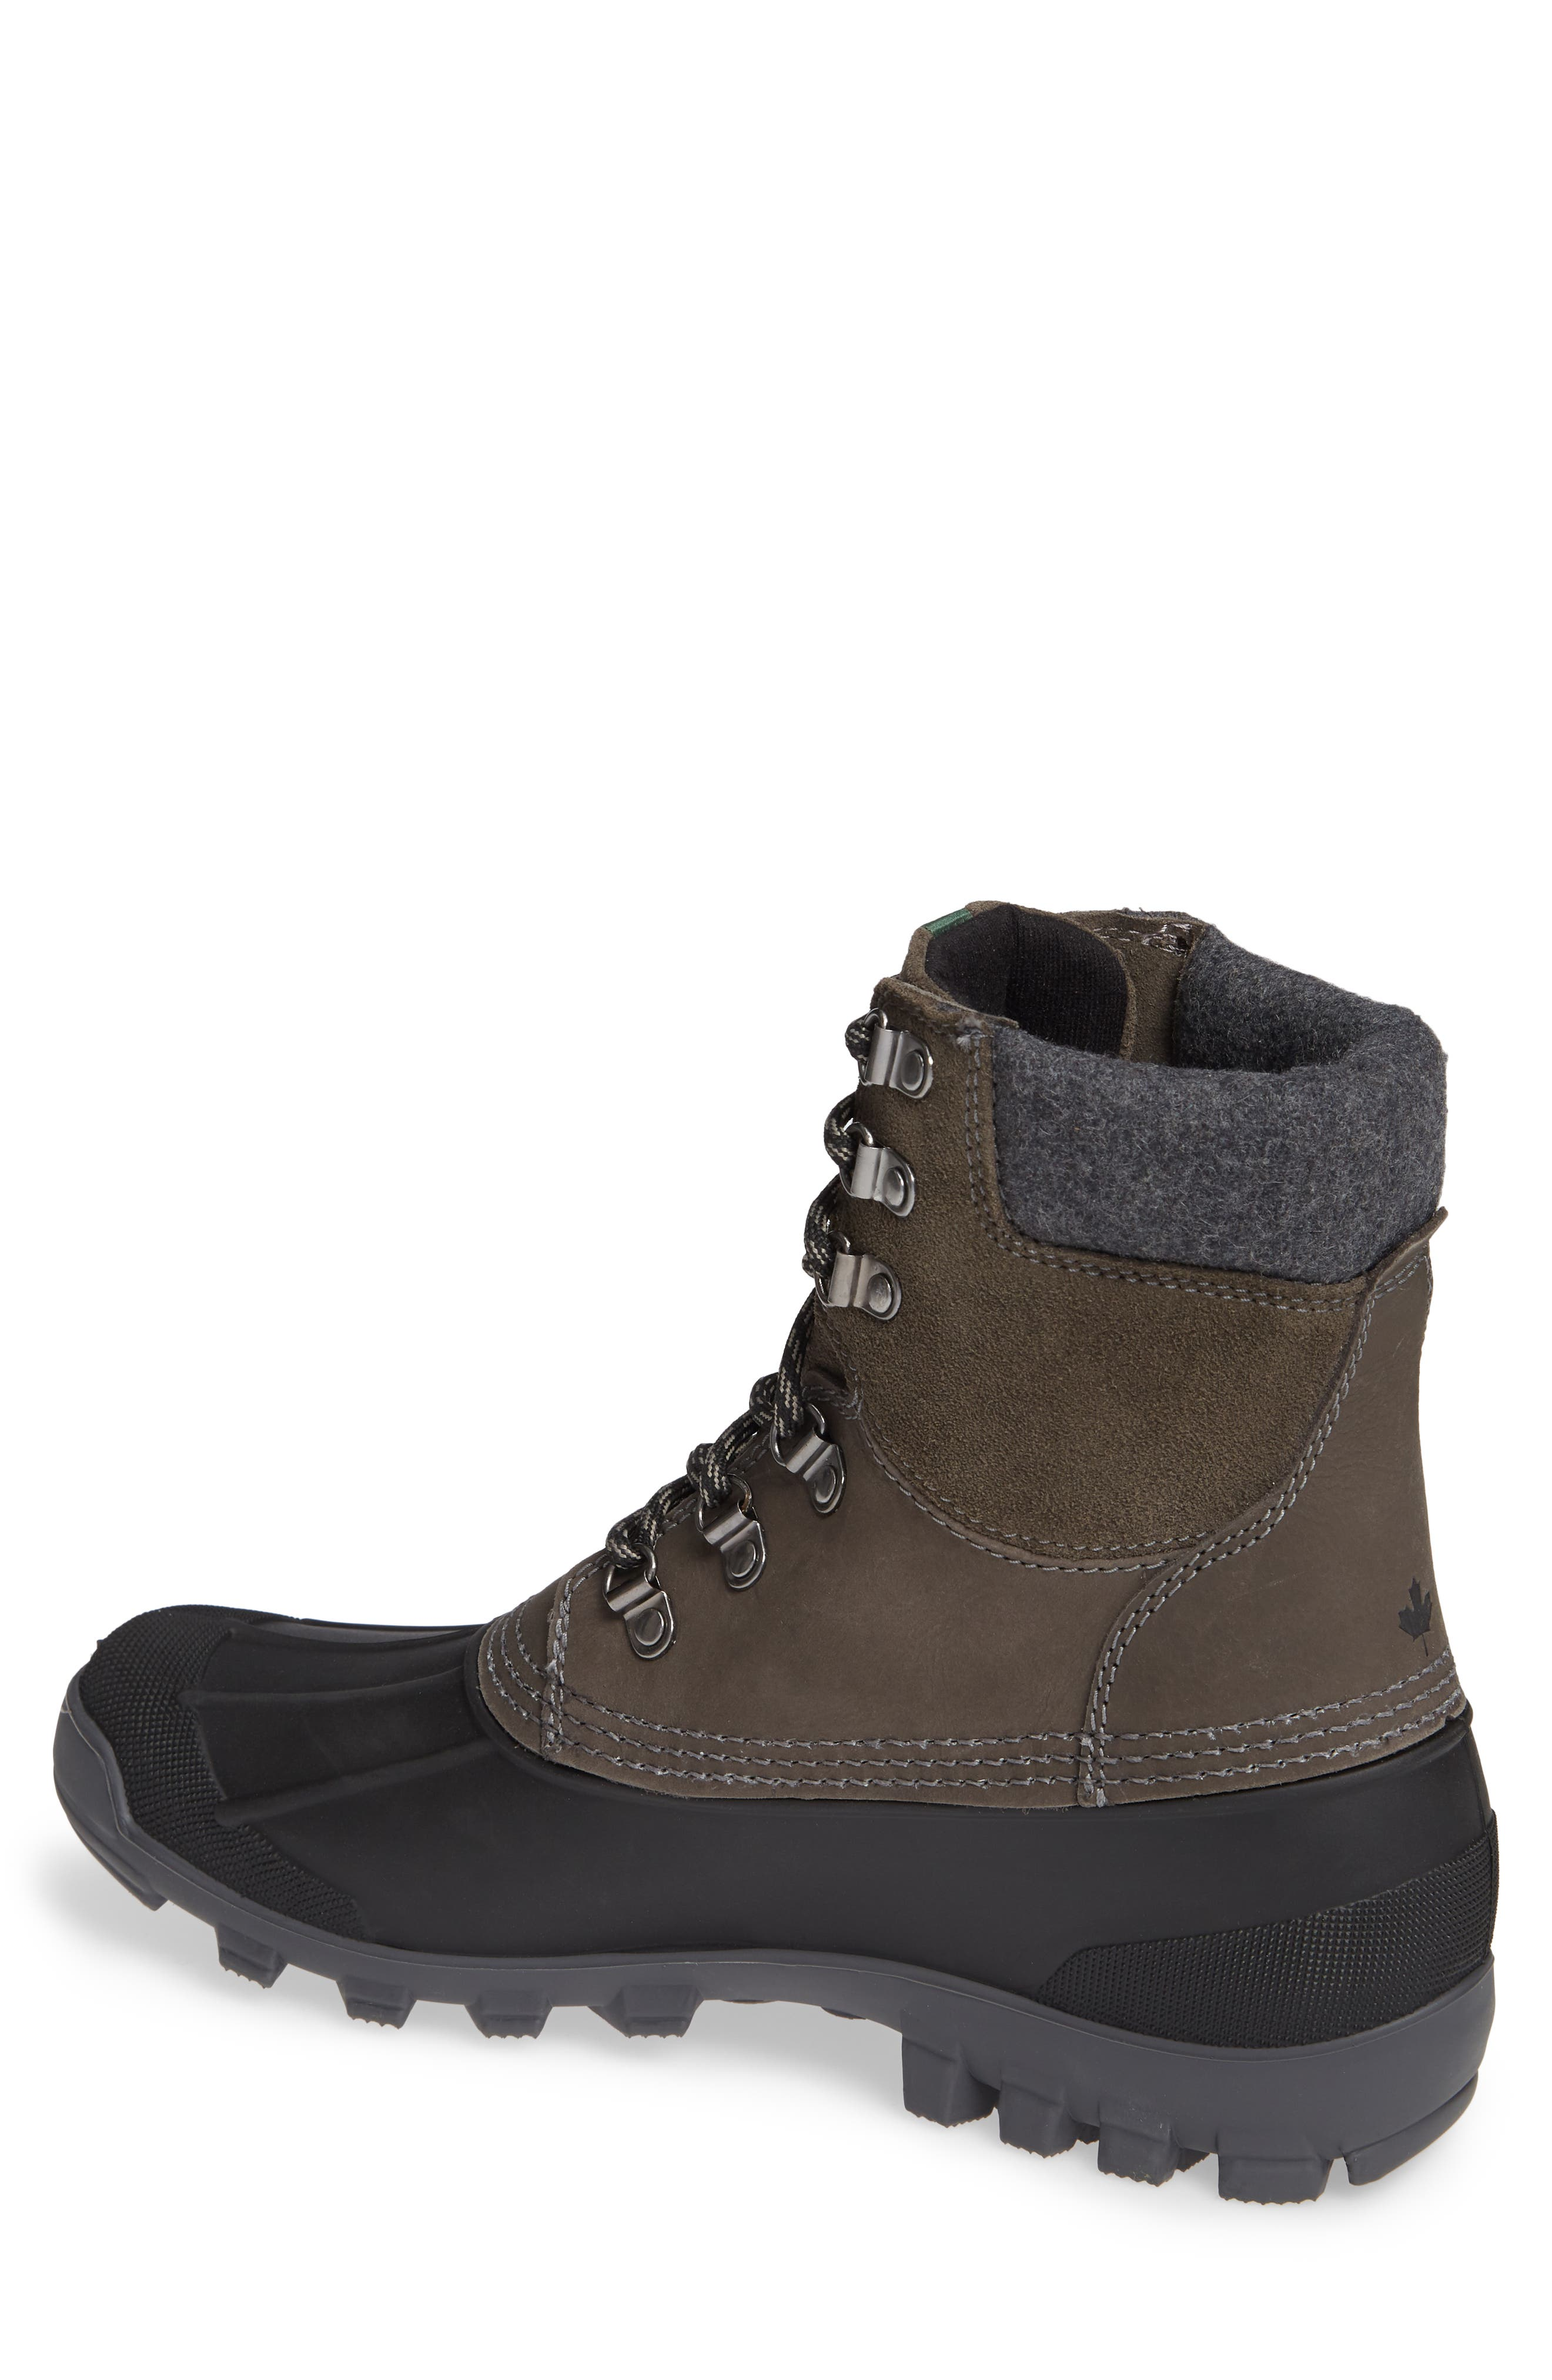 Hudson 5 Boot,                             Alternate thumbnail 2, color,                             CHARCOAL LEATHER